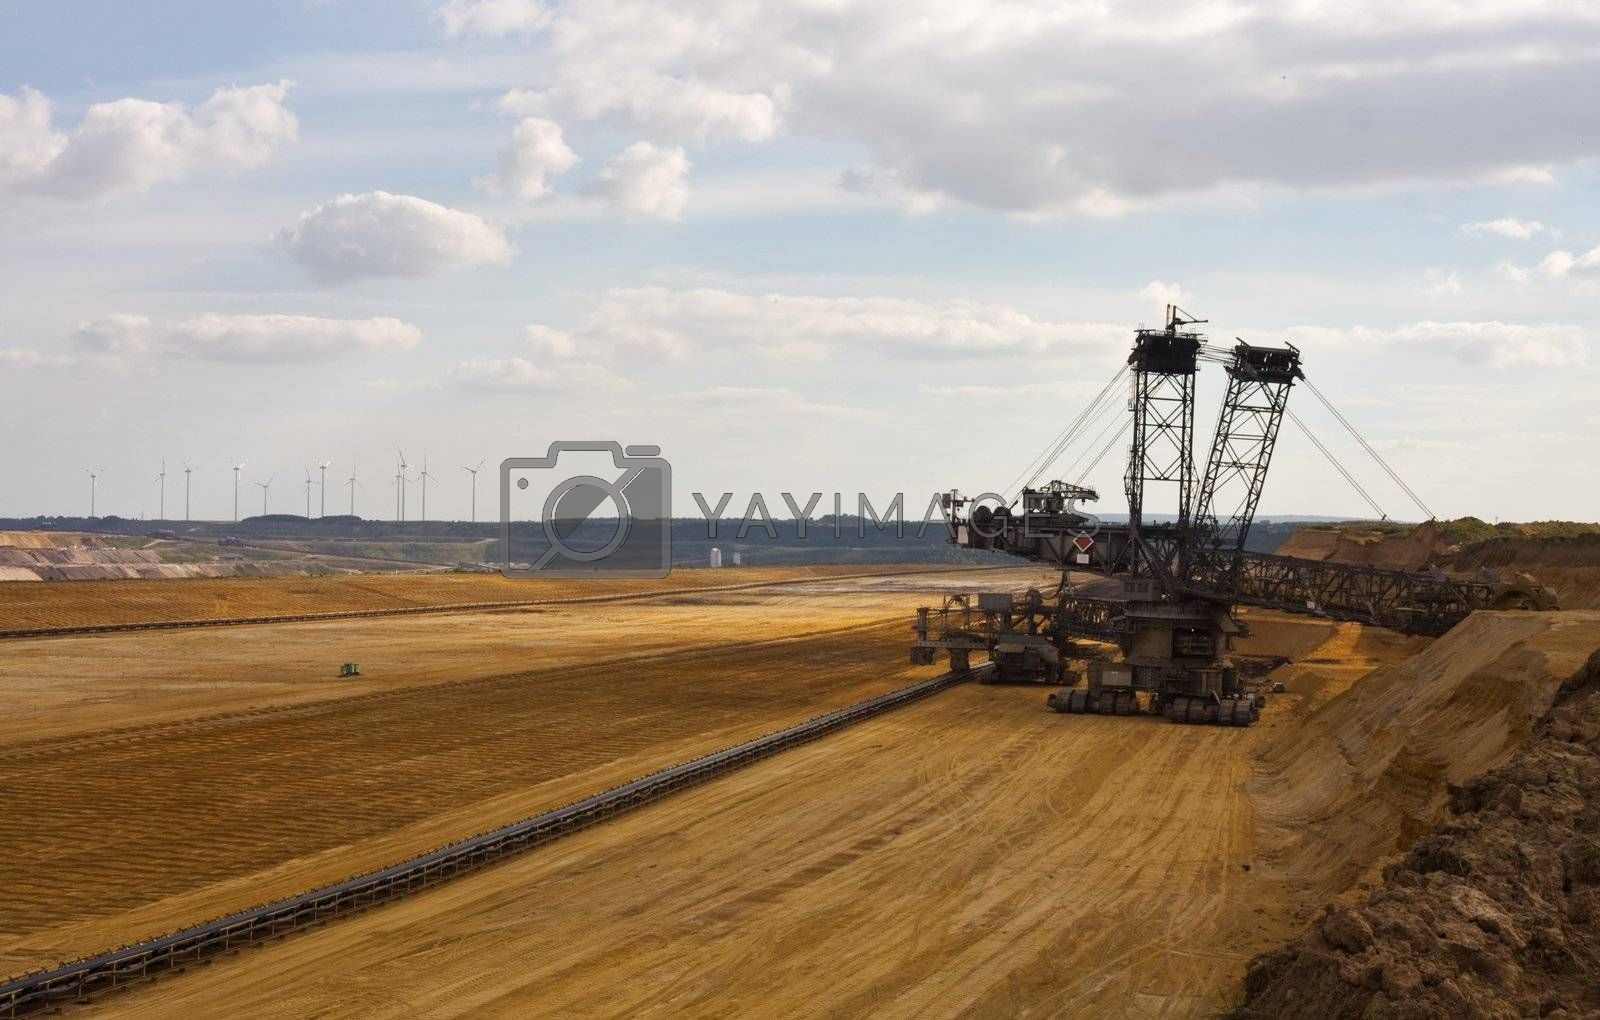 Giant bucket wheel excavator taking away the layers of ground before digging the brown coal.